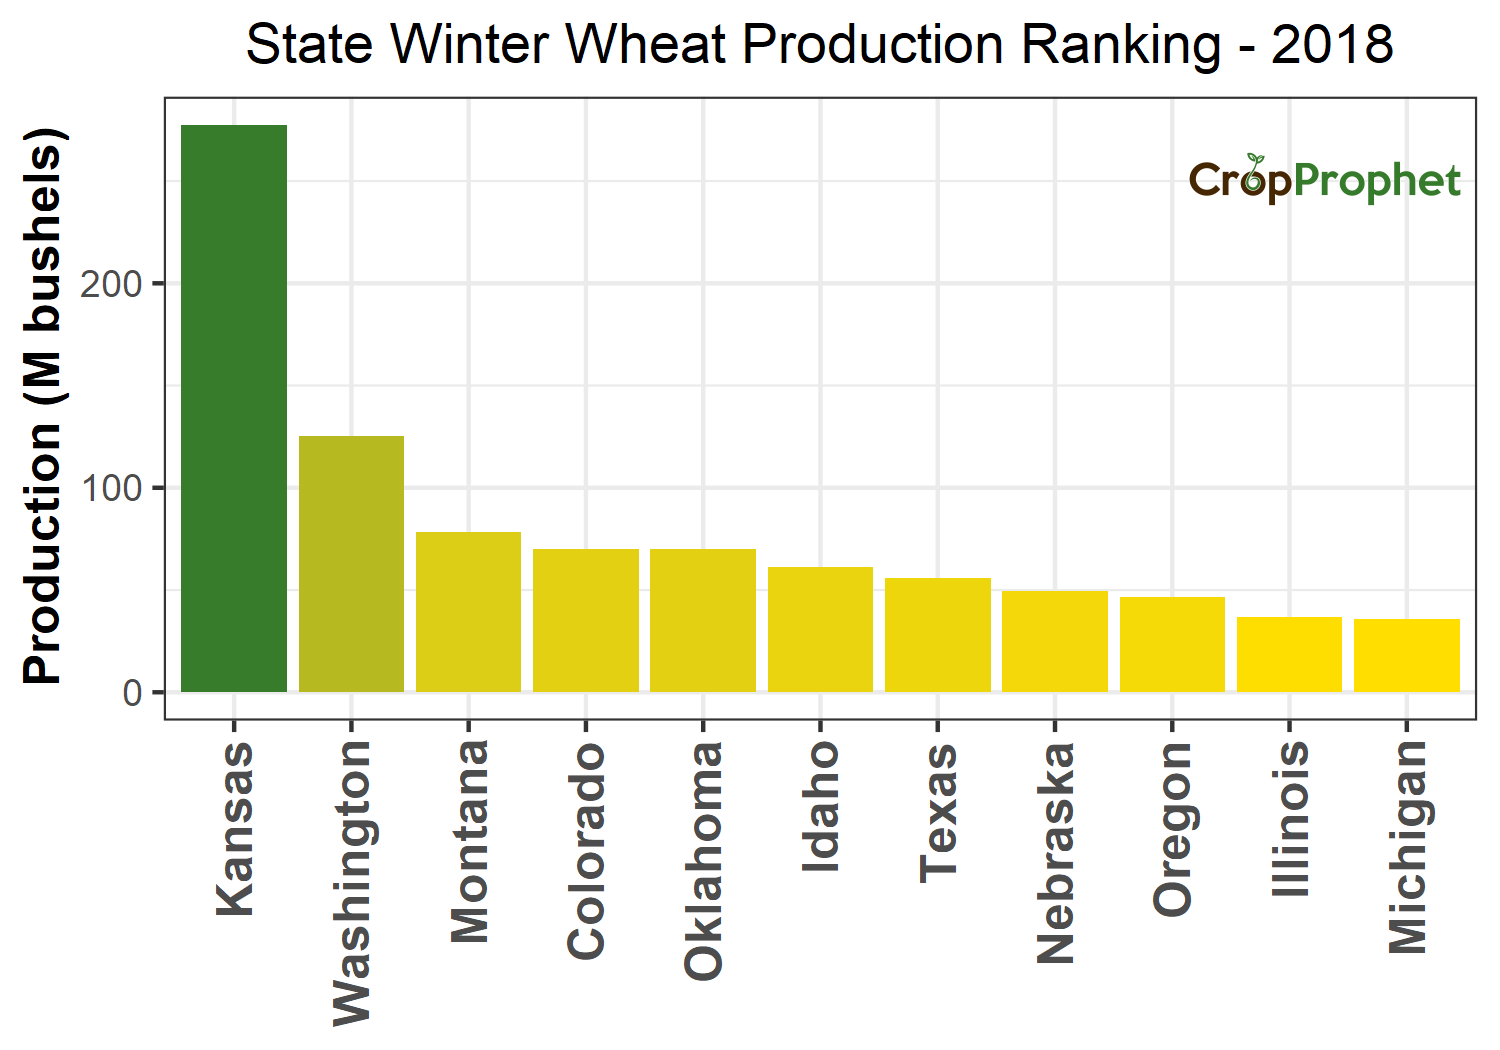 Winter wheat Production by State - 2018 Rankings